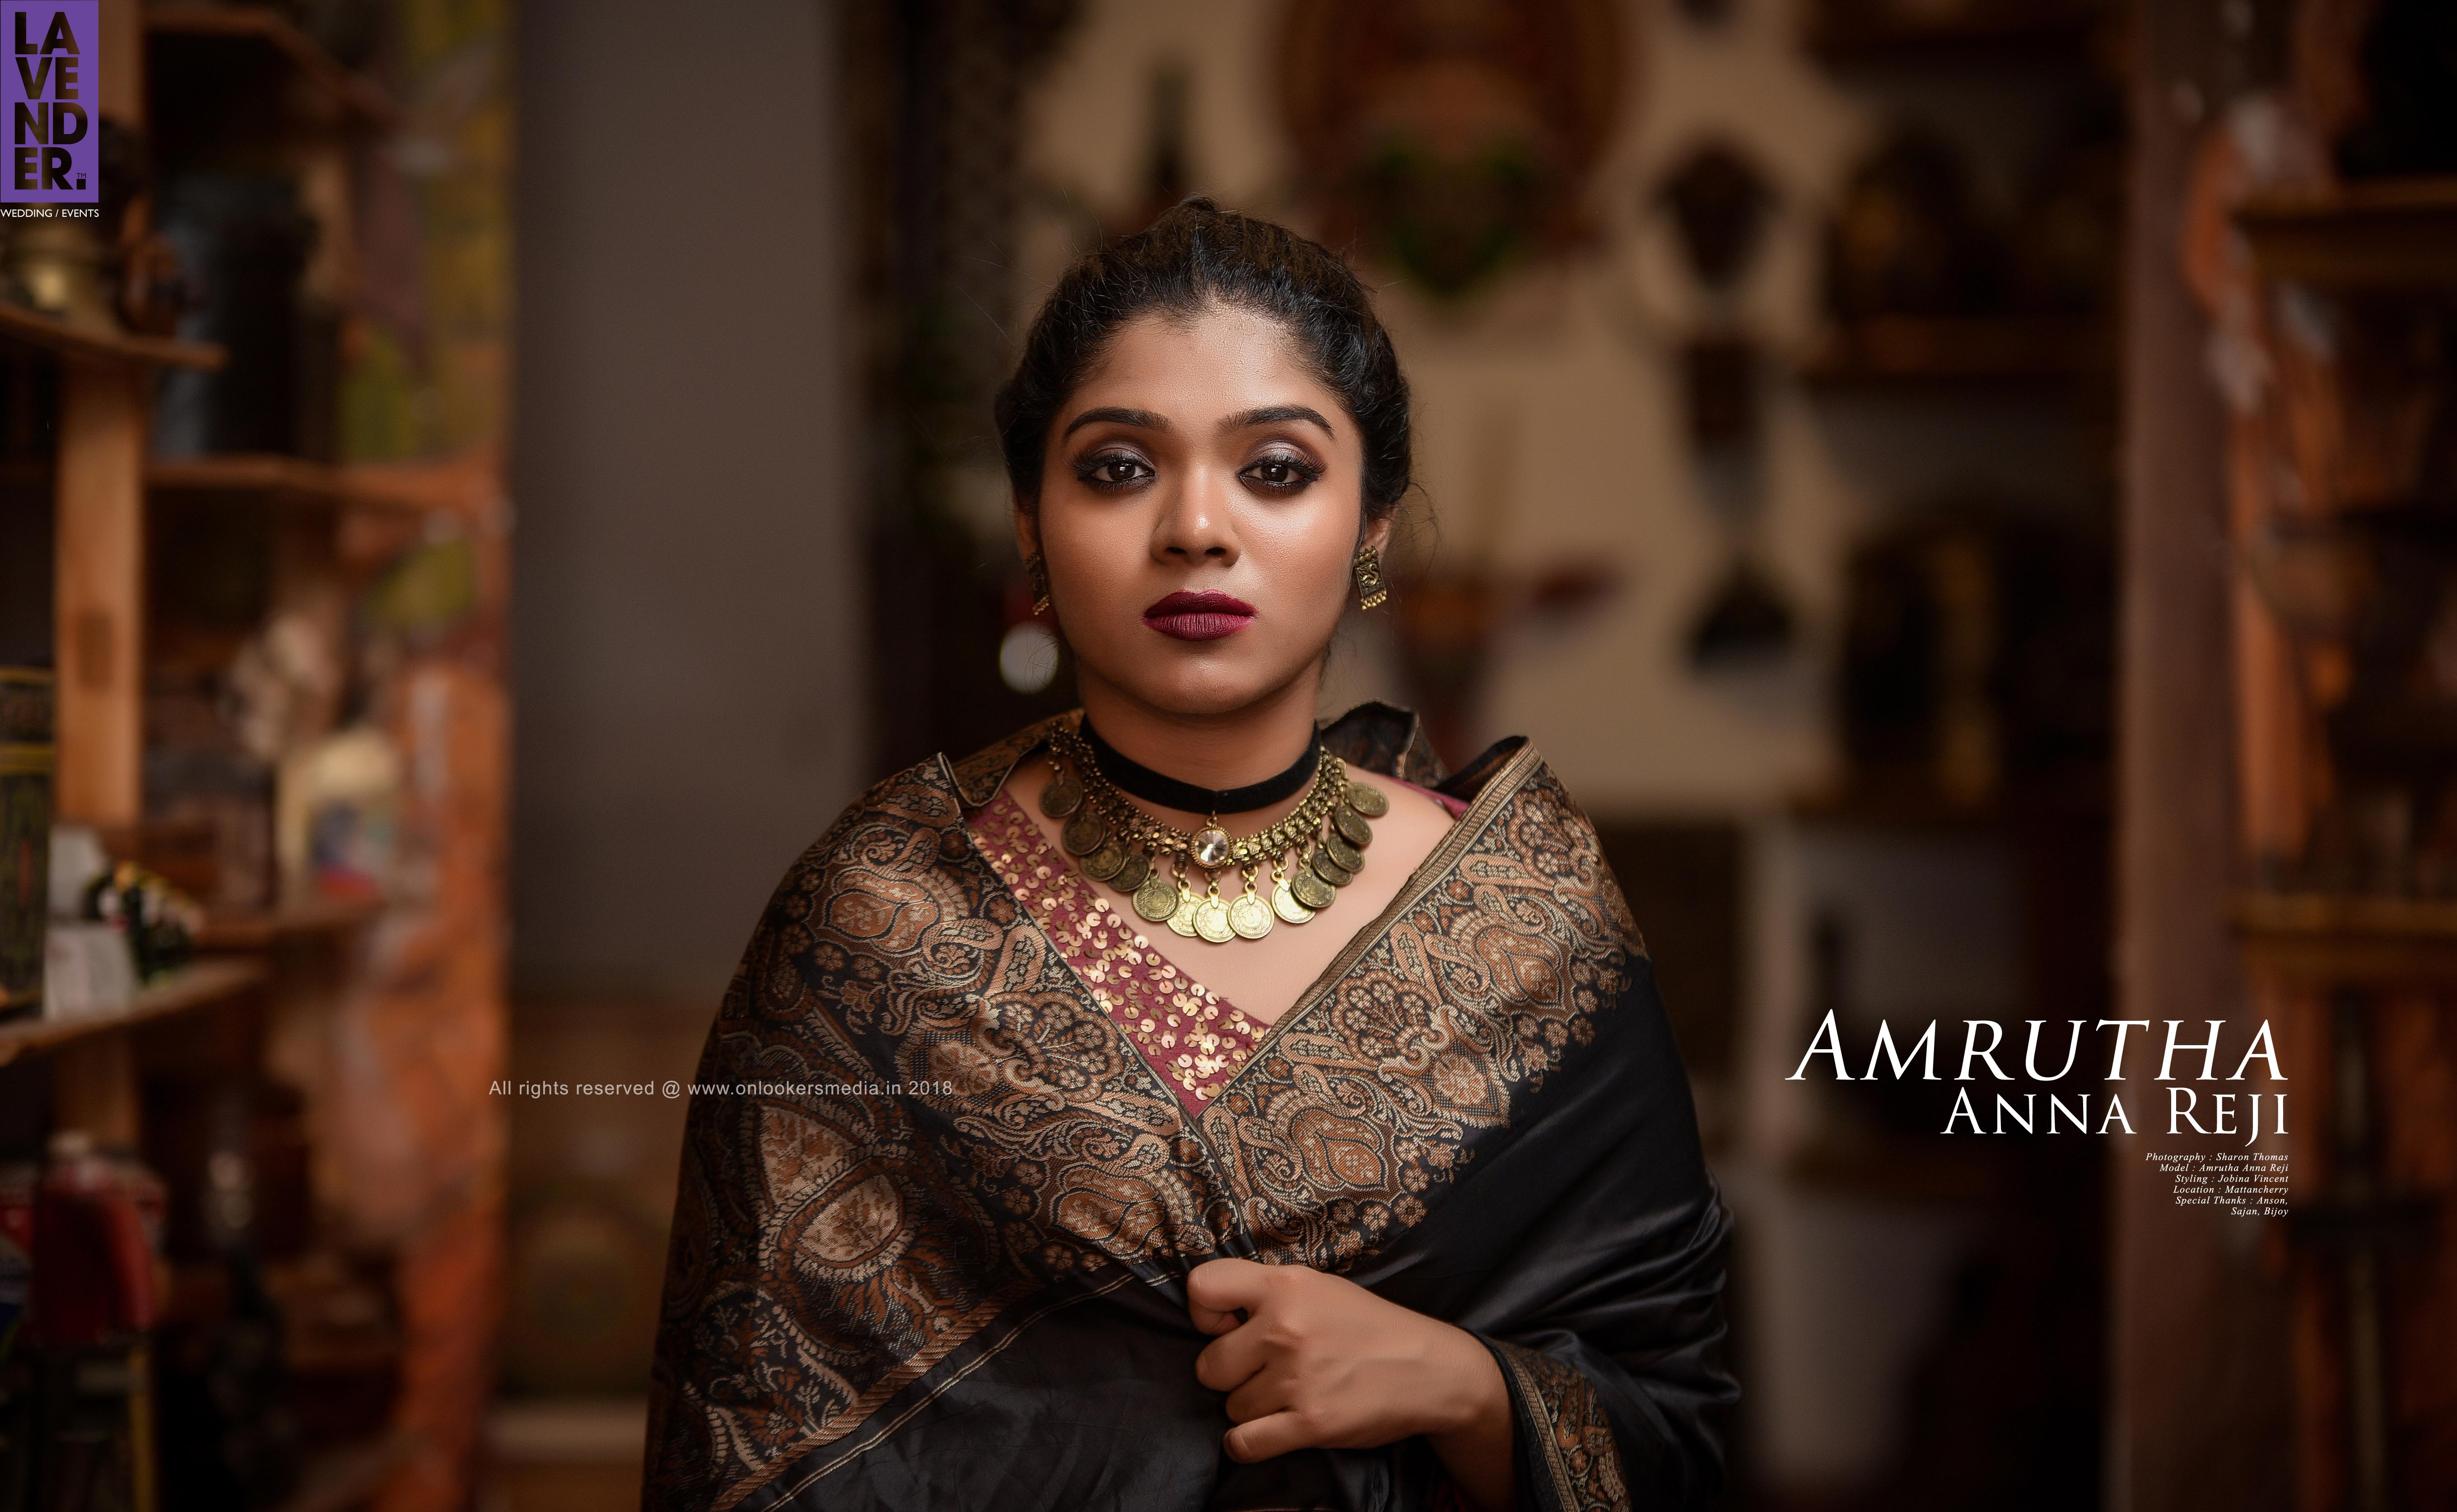 http://onlookersmedia.in/wp-content/uploads/2018/03/amrutha-anna-reji-make-over-stills-images-photos-24.jpg